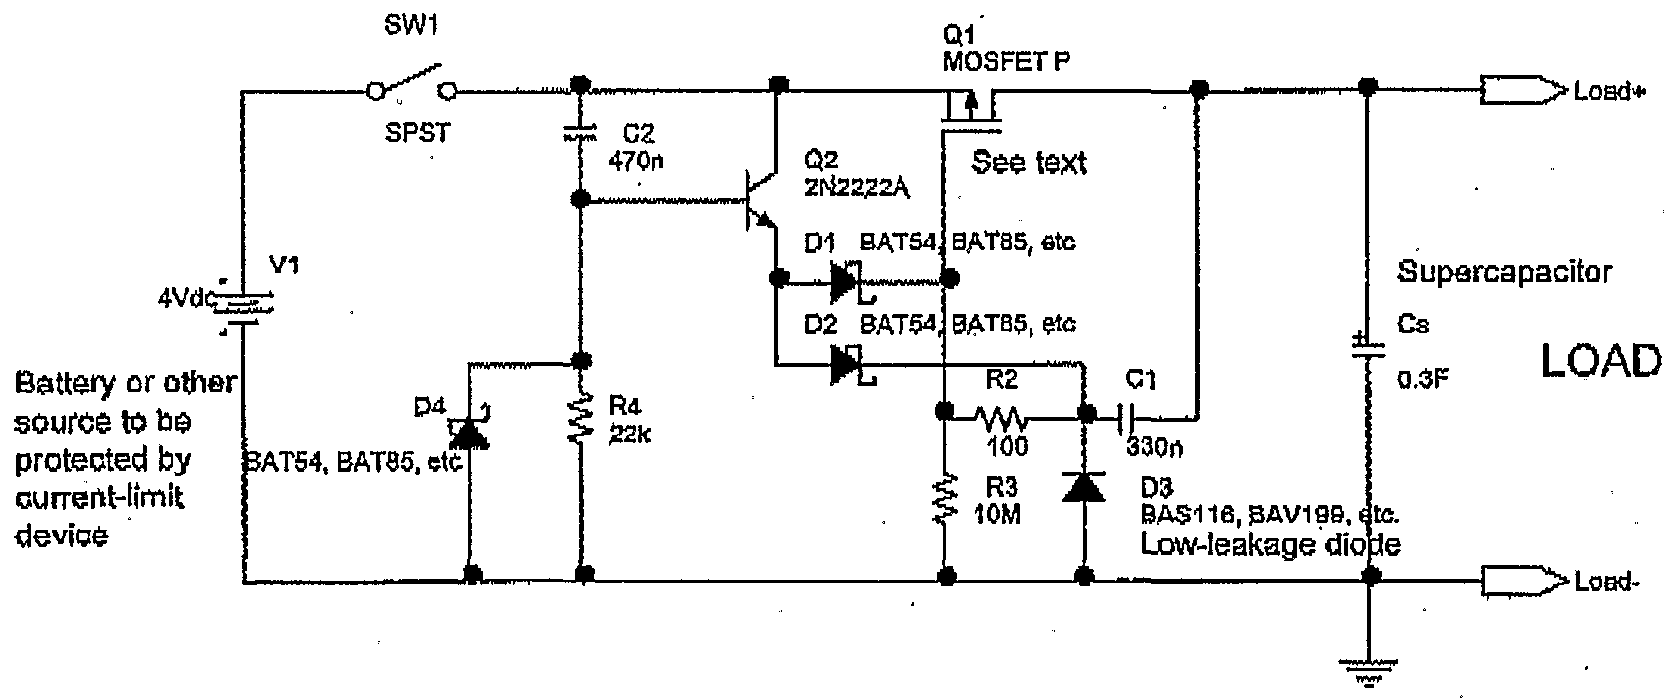 Simple Adjustable Power Supply moreover 93 Club Car Wiring Diagram besides Views further Watch furthermore Lm350 Current Limiter. on voltage limiter circuit diagram